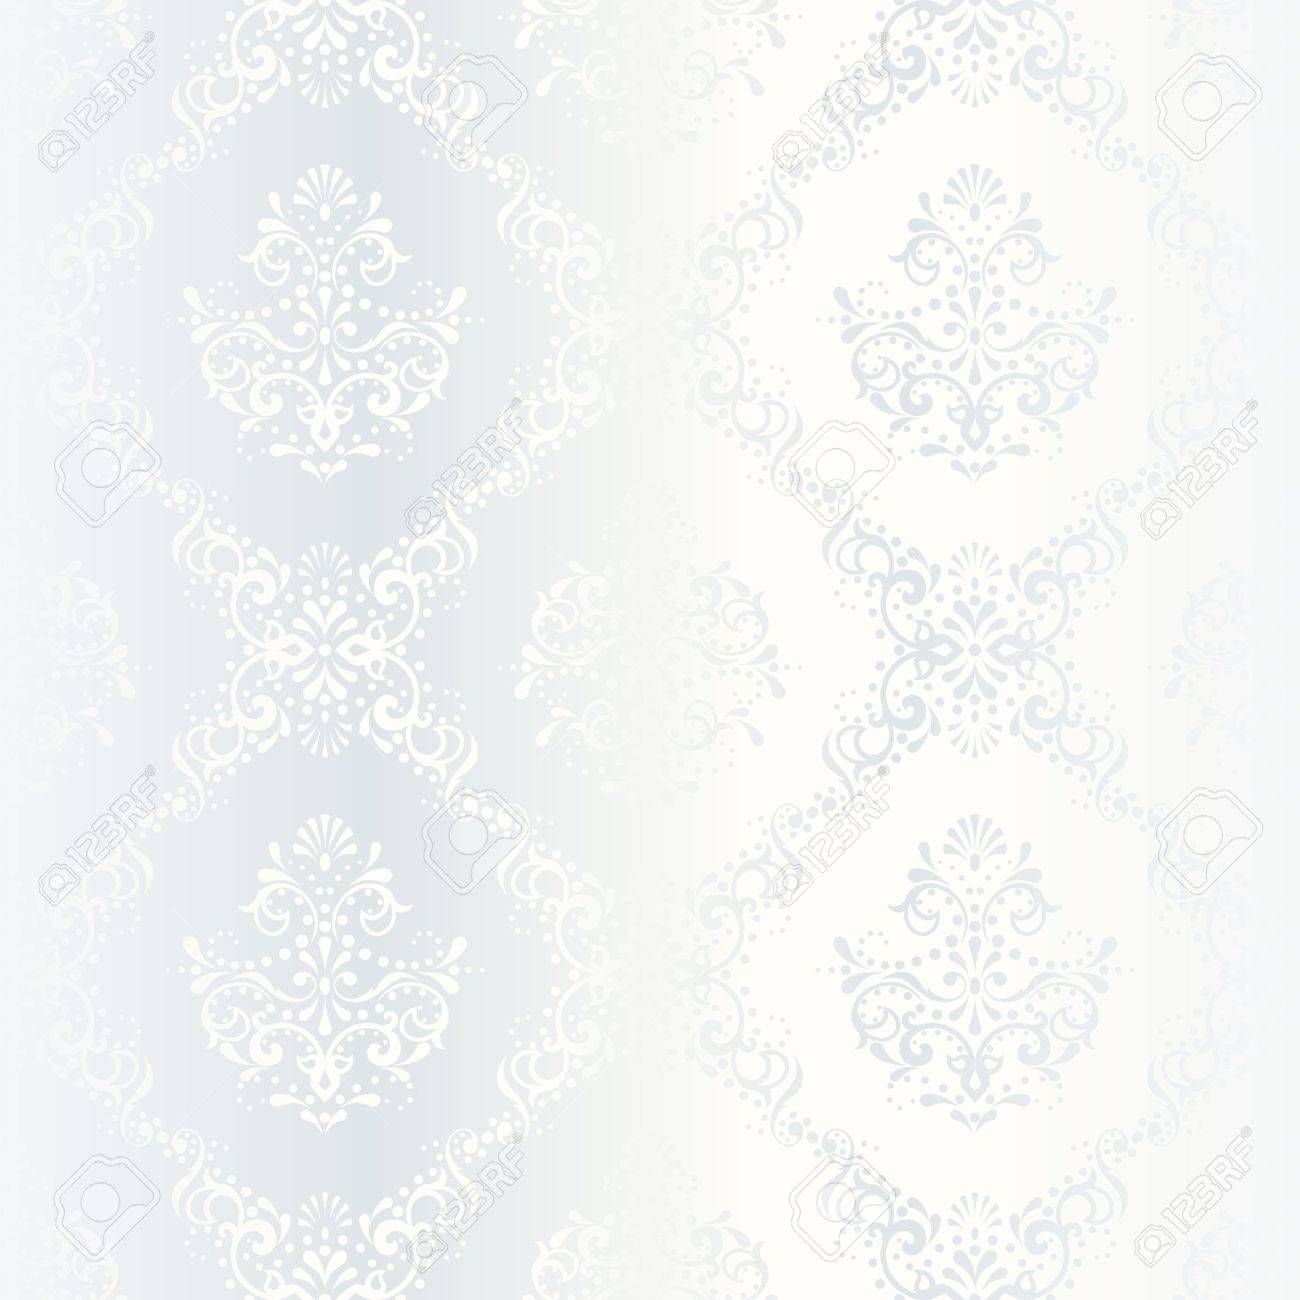 elegant white seamless pattern, prefect for wedding designs. The tiles can be combined seamlessly. Graphics are grouped and in several layers for easy editing. The file can be scaled to any size. Stock Vector - 5116812